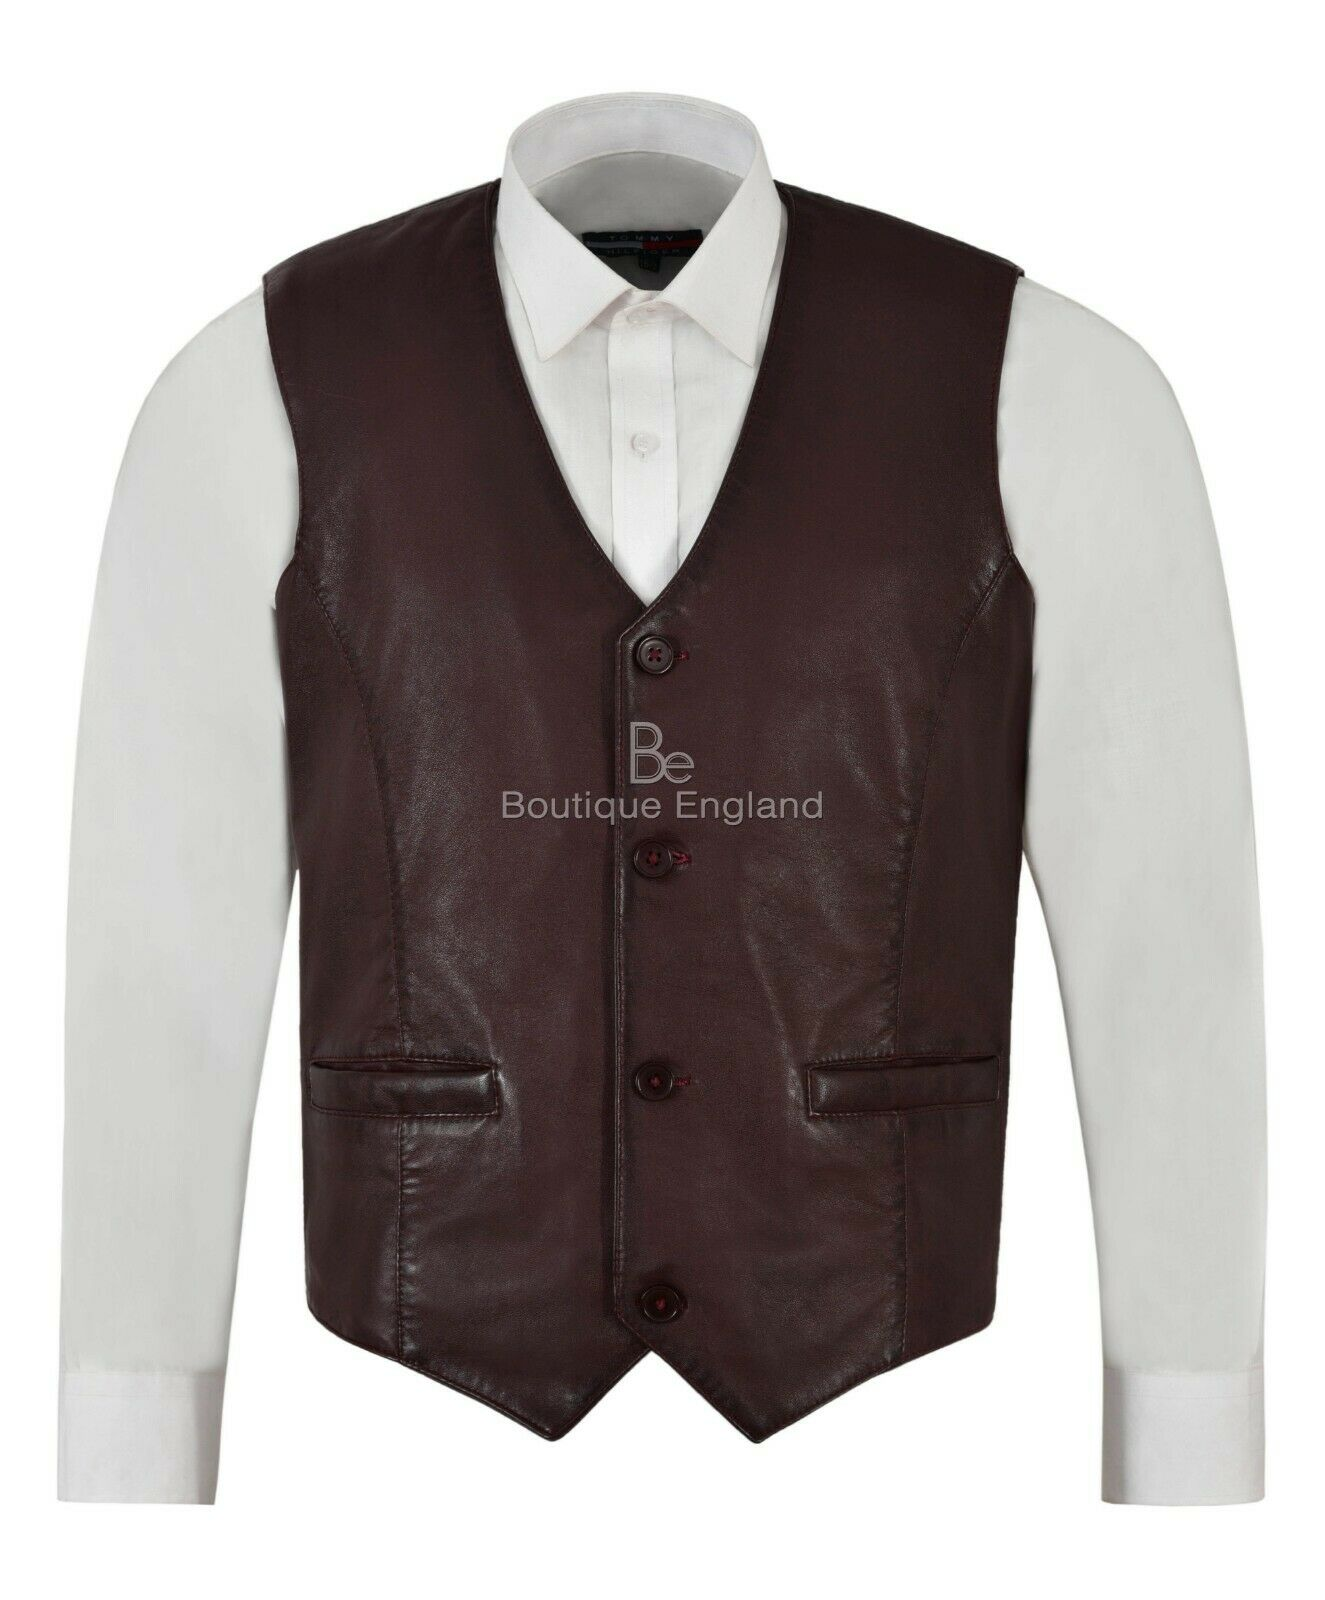 Men's Real Leather Waistcoat Cherry Napa Party Fashion Classic Style Vest 5226